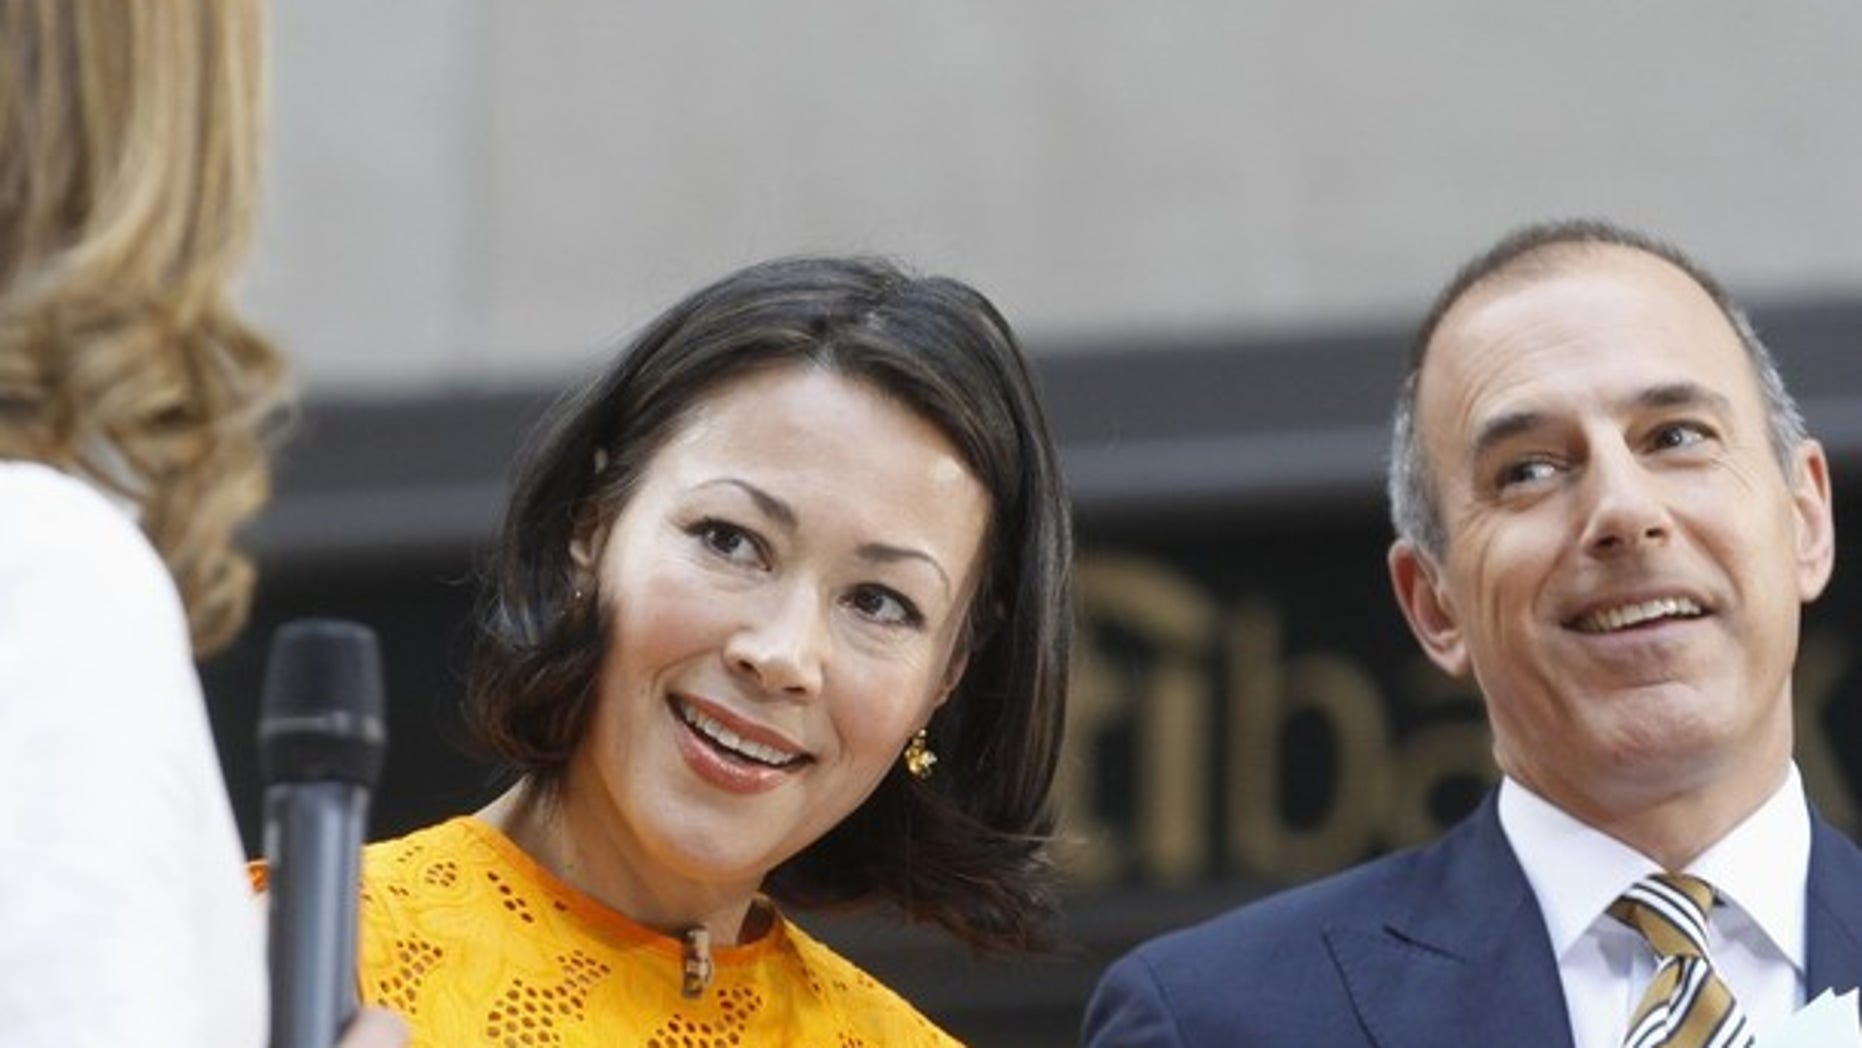 """""""Today"""" show hosts Ann Curry and Matt Lauer appear on set during the show in New York June 22, 2012. NBC executives are in talks with Curry about moving her to one of the network's news programs, only a year after she succeeded Meredith Viera at the morning show.  REUTERS/Brendan McDermid (UNITED STATES - Tags: ENTERTAINMENT PROFILE)"""